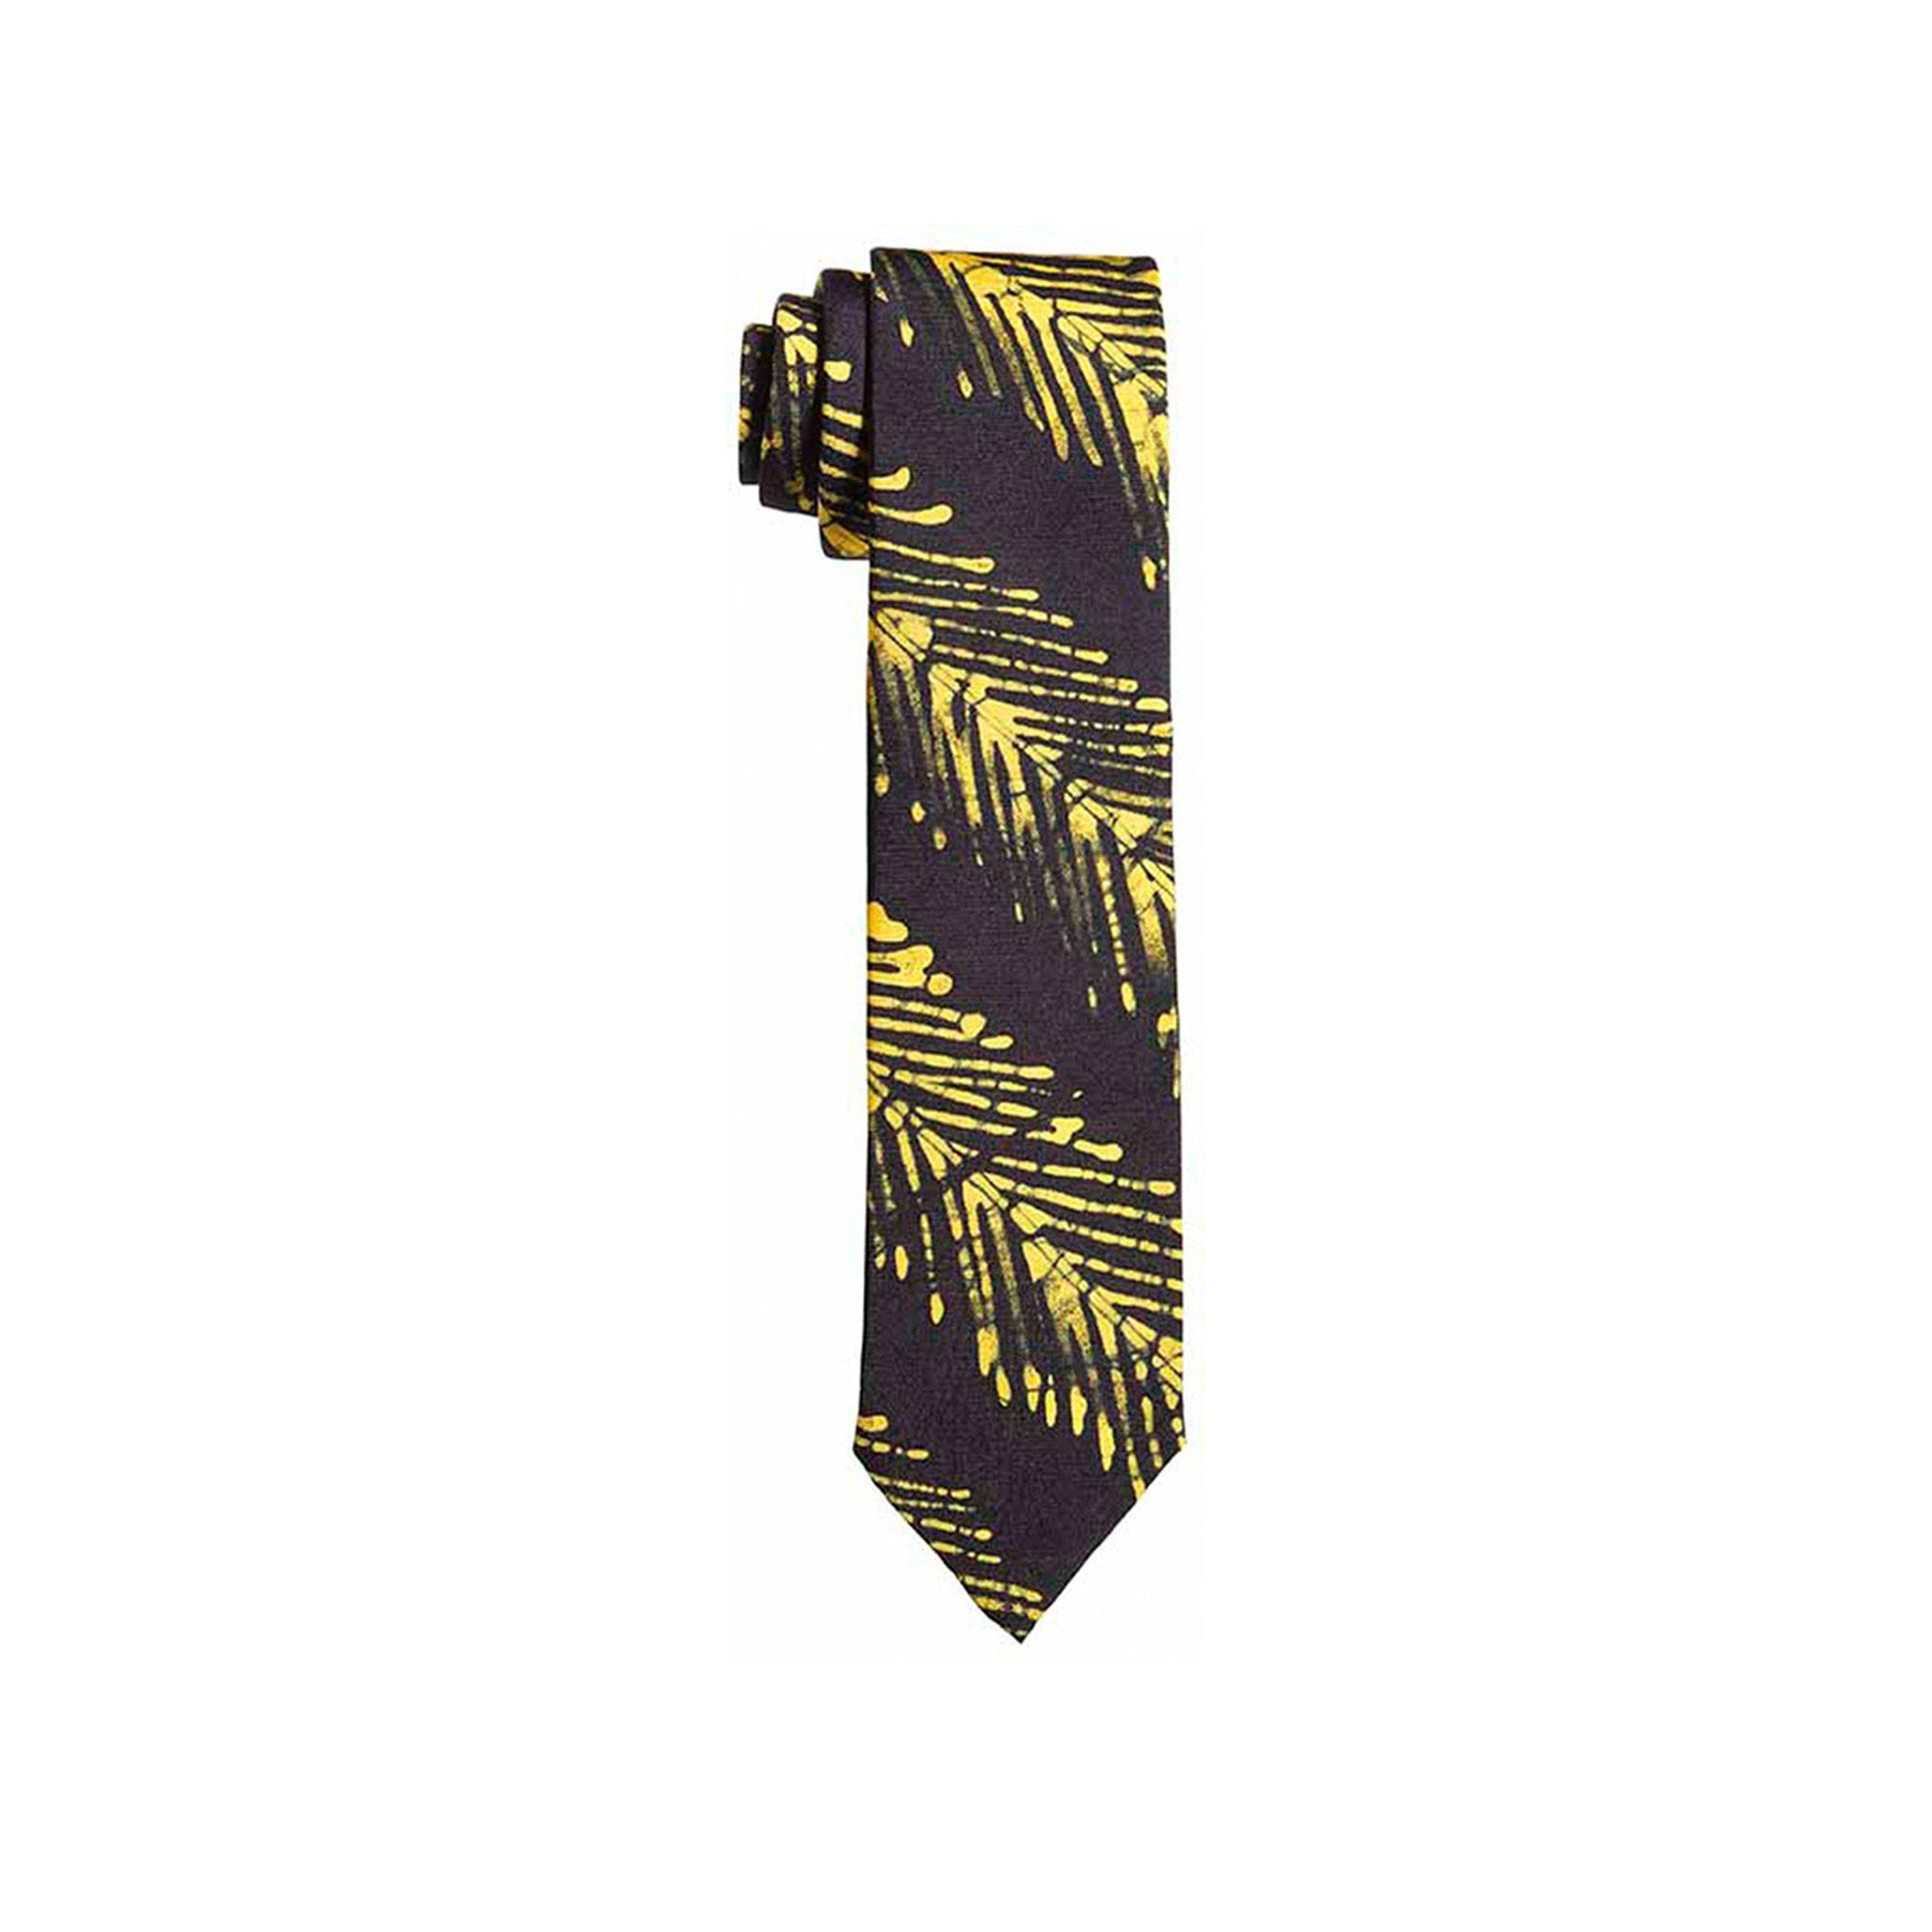 Yellow Fishbone Striped Adire Tie - Post Imperial - OXOSI